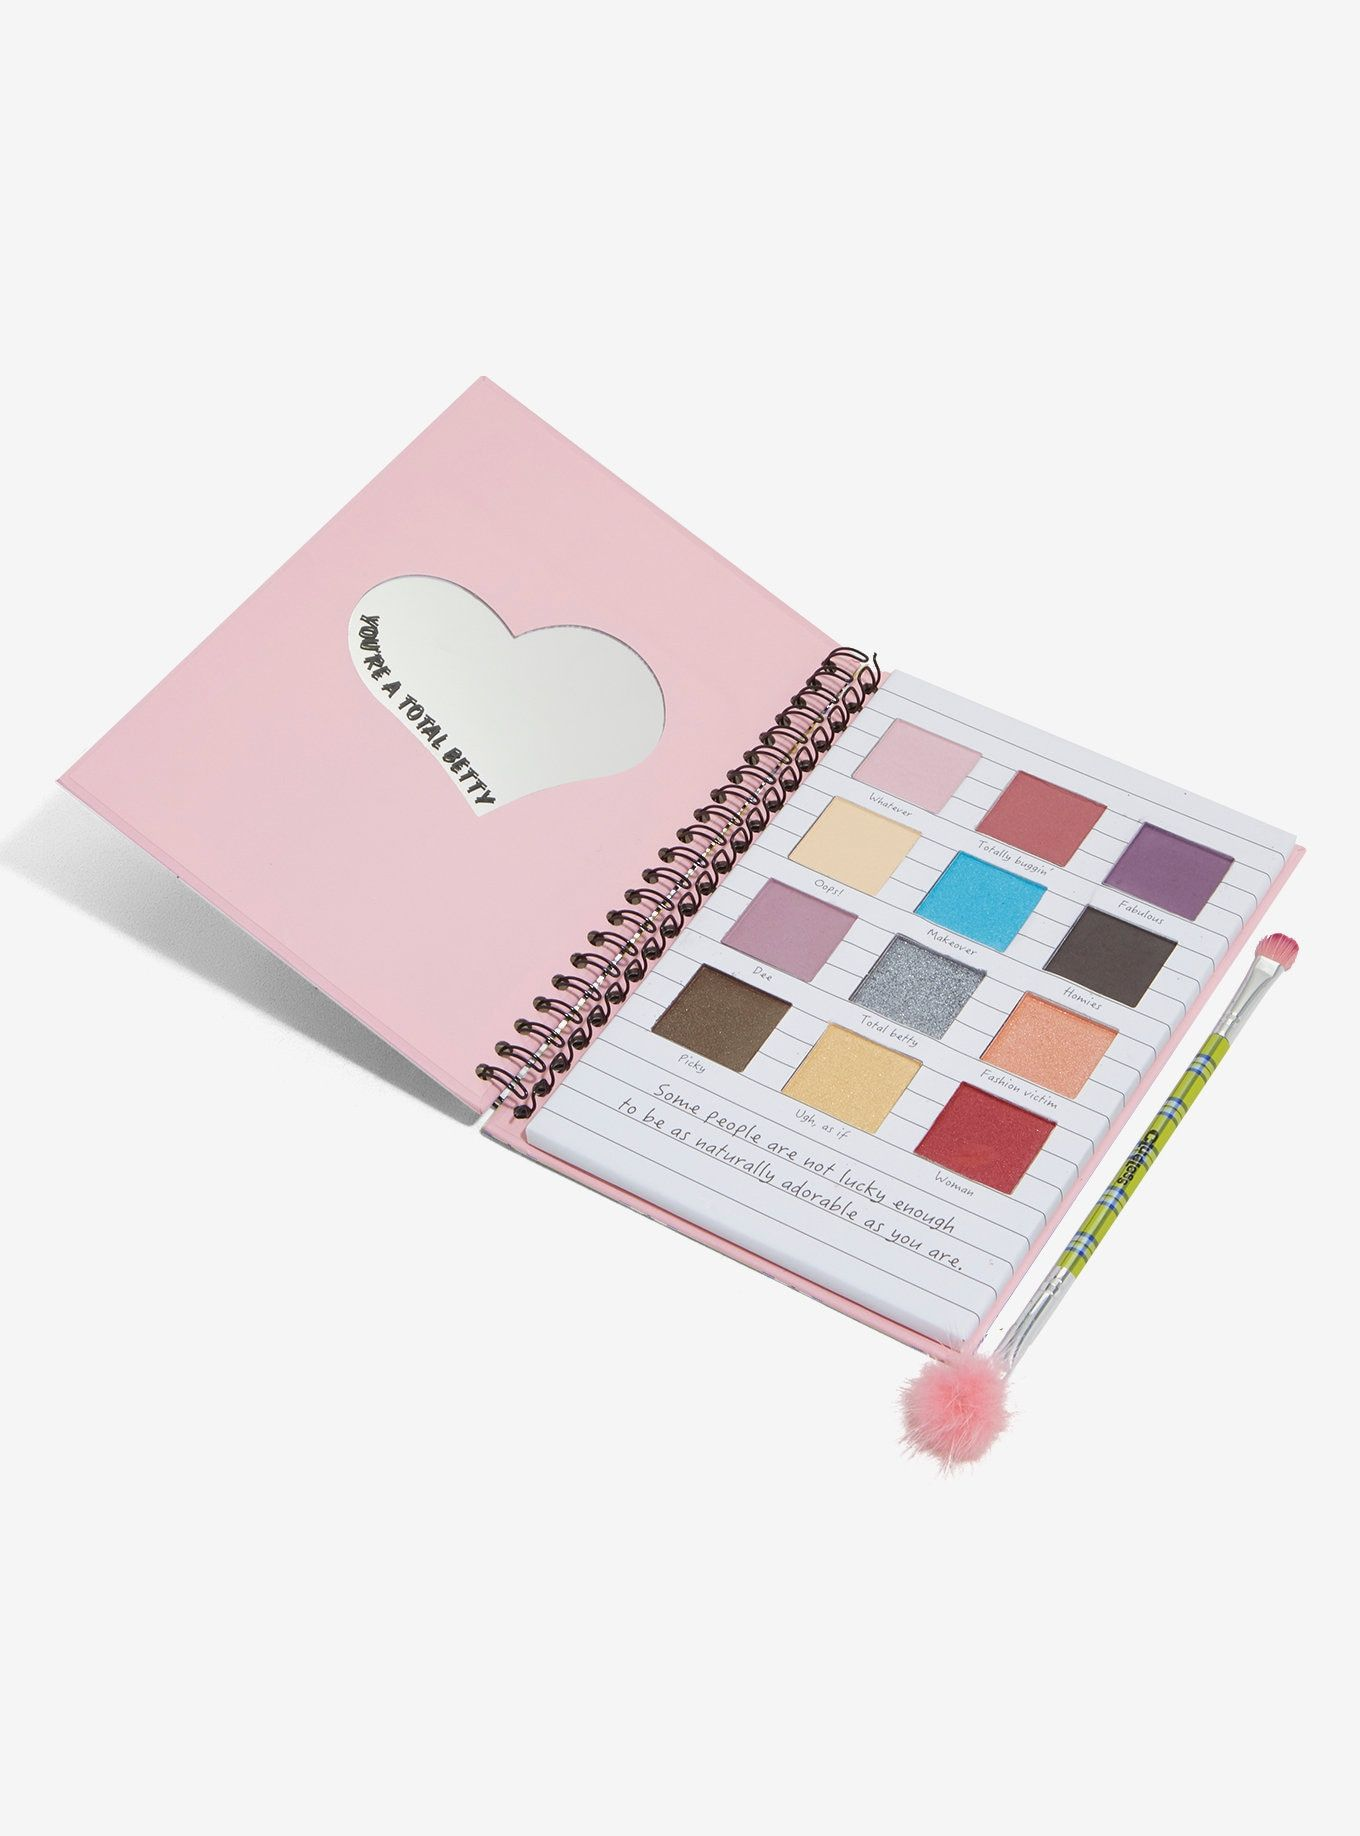 Clueless Totally Buggin Eyeshadow Palette Hot Topic Exclusive In